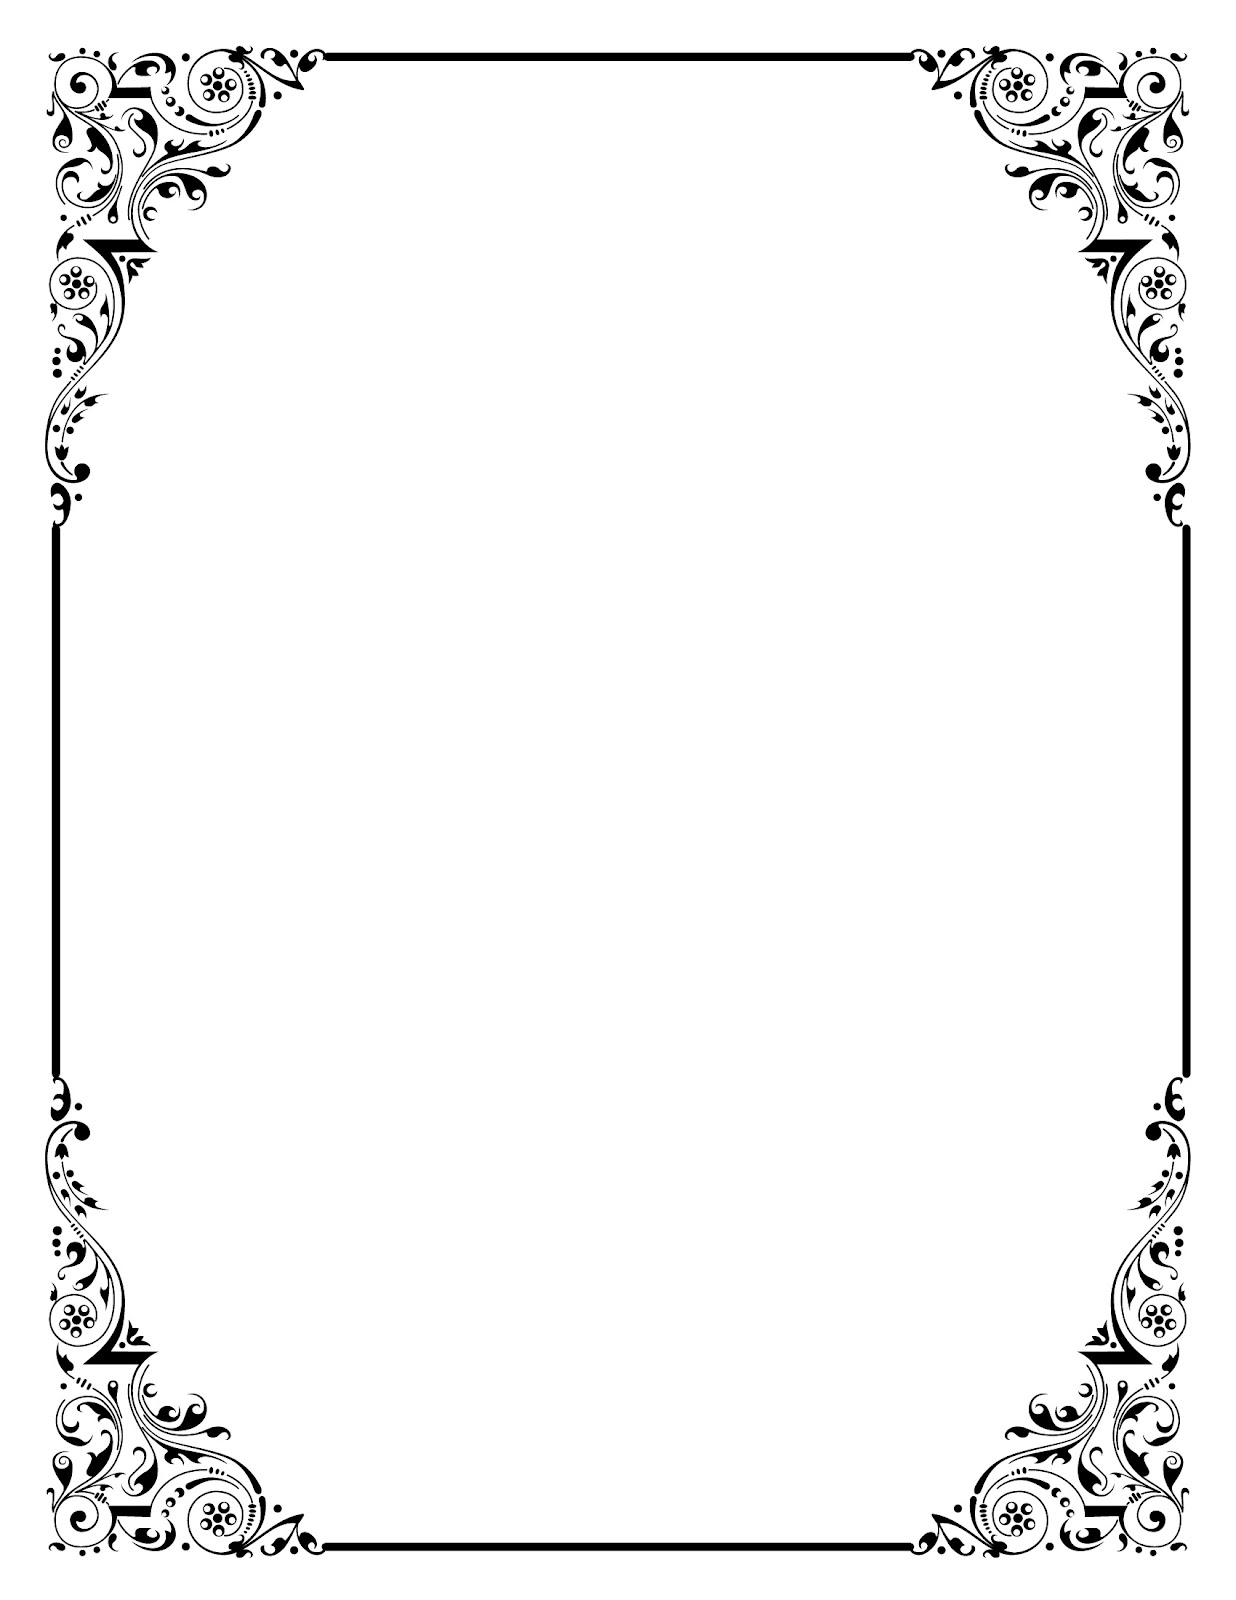 Elegant clipart graphic royalty free stock Elegant frame clip art - ClipartFest graphic royalty free stock